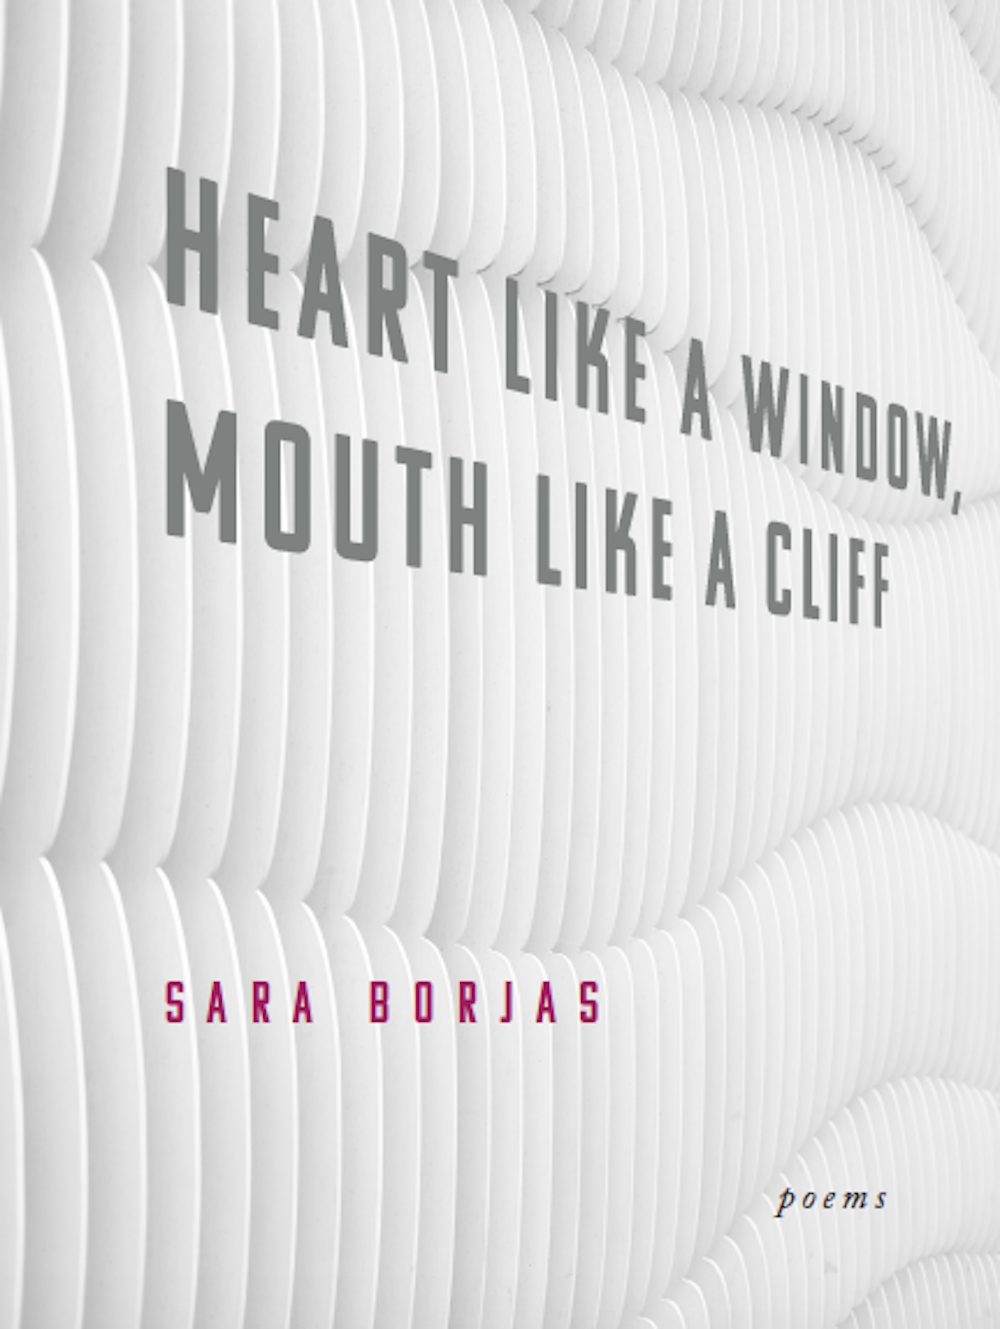 Heart like a Window, Mouth like a Cliff by Sara Borjas